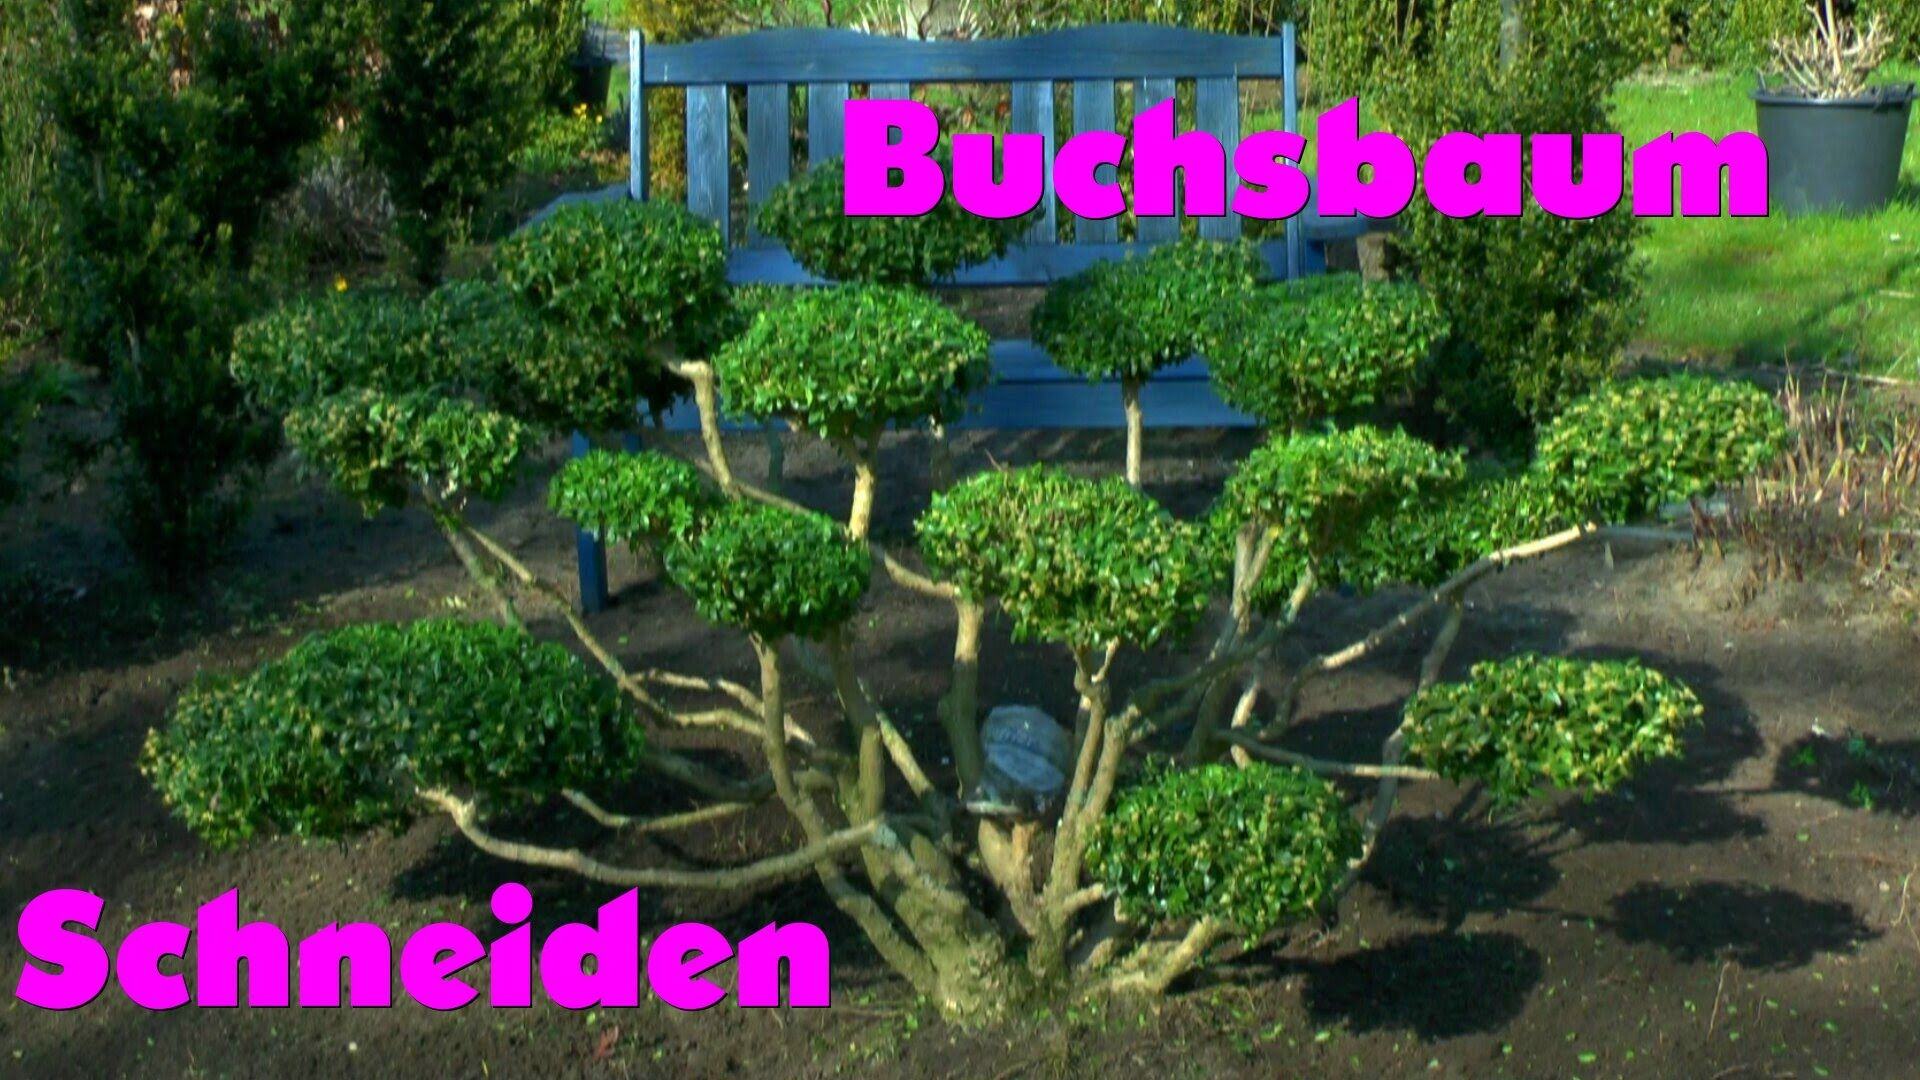 buchsbaum buxus boxwood neu gestalten re style 2. Black Bedroom Furniture Sets. Home Design Ideas